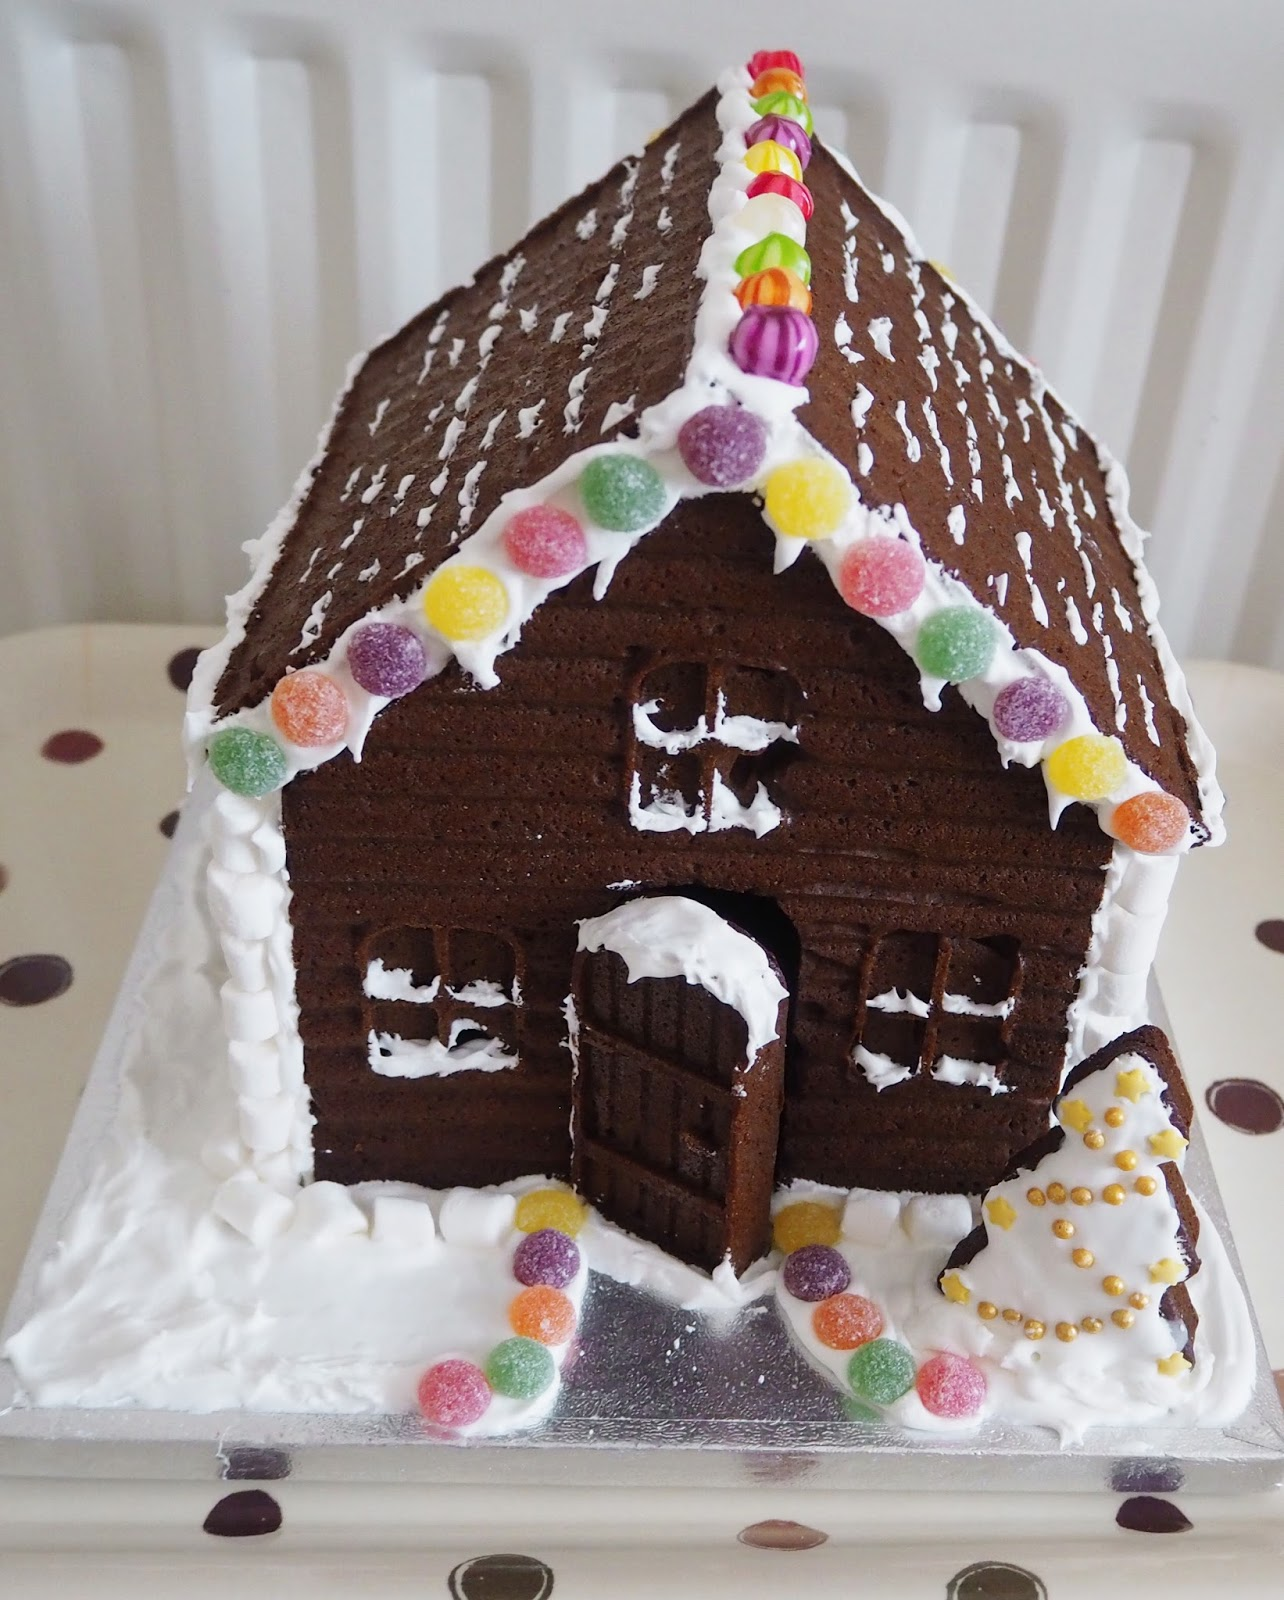 Homemade Gingerbread House | Katie Kirk Loves